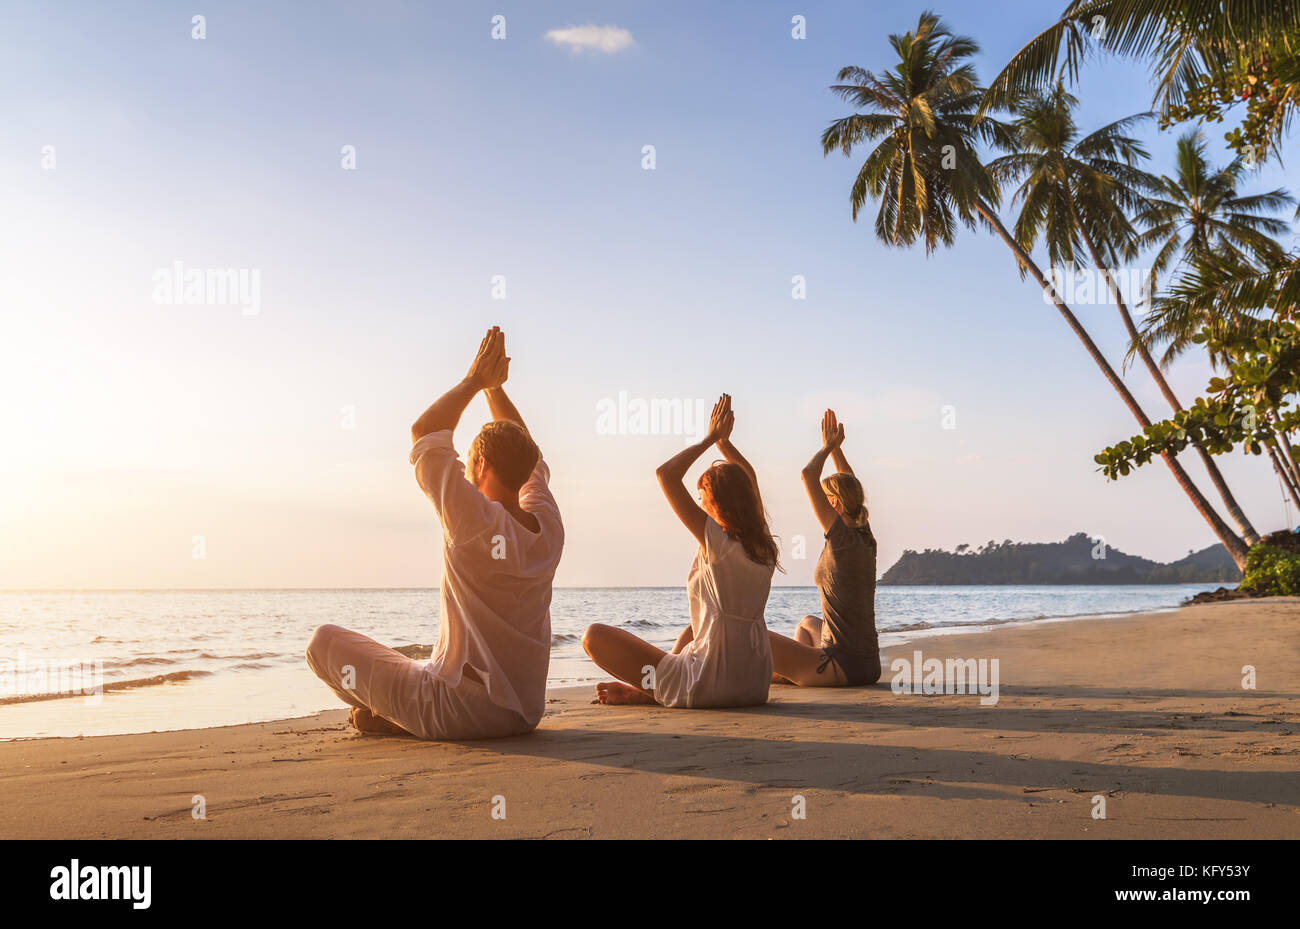 Group of three people practicing yoga lotus position on the beach for relaxation and wellbeing, warm tropical summer - Stock Image